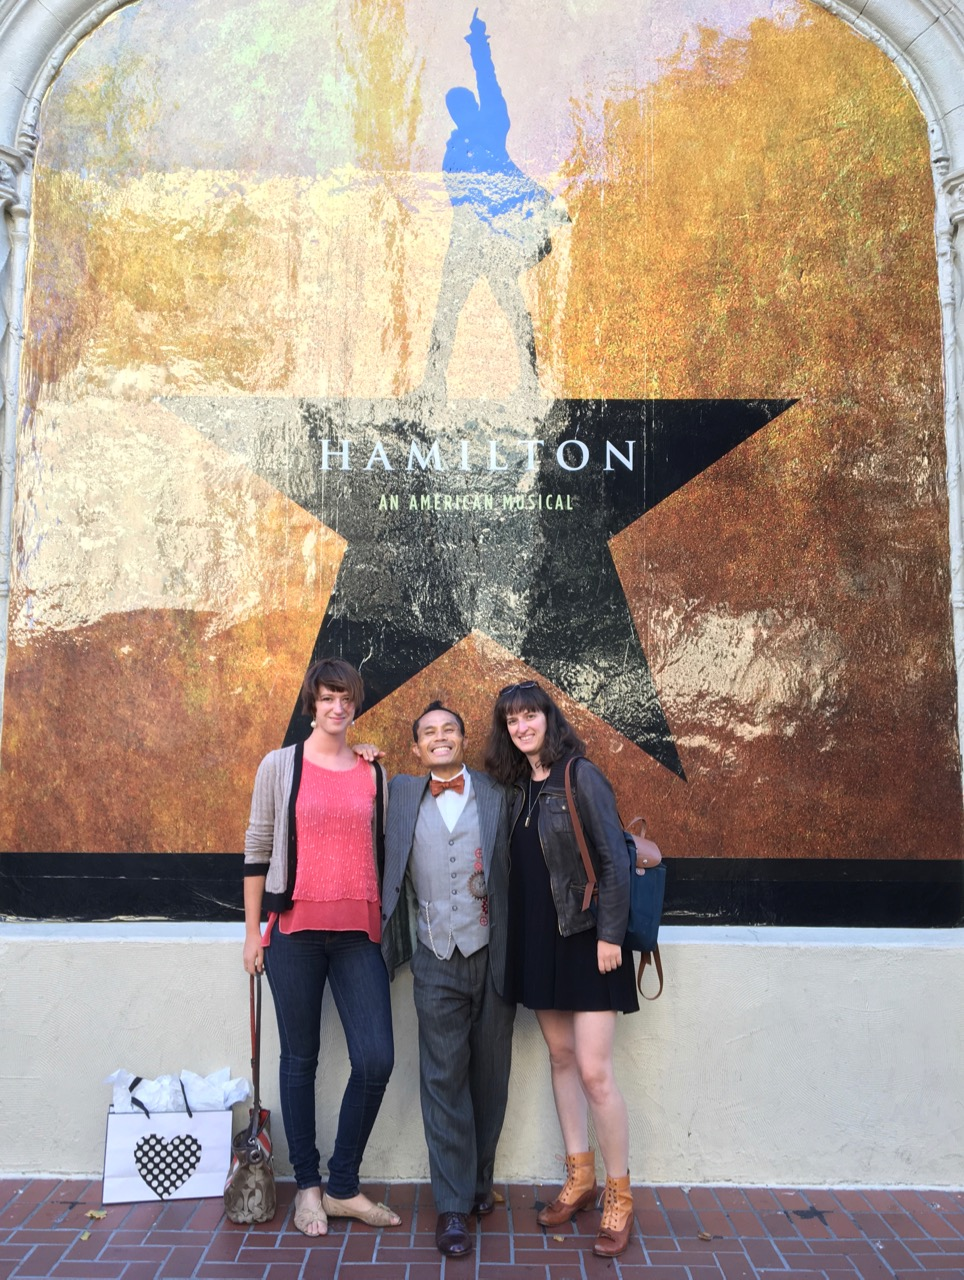 Hamilton-ing with the Yendler sisters